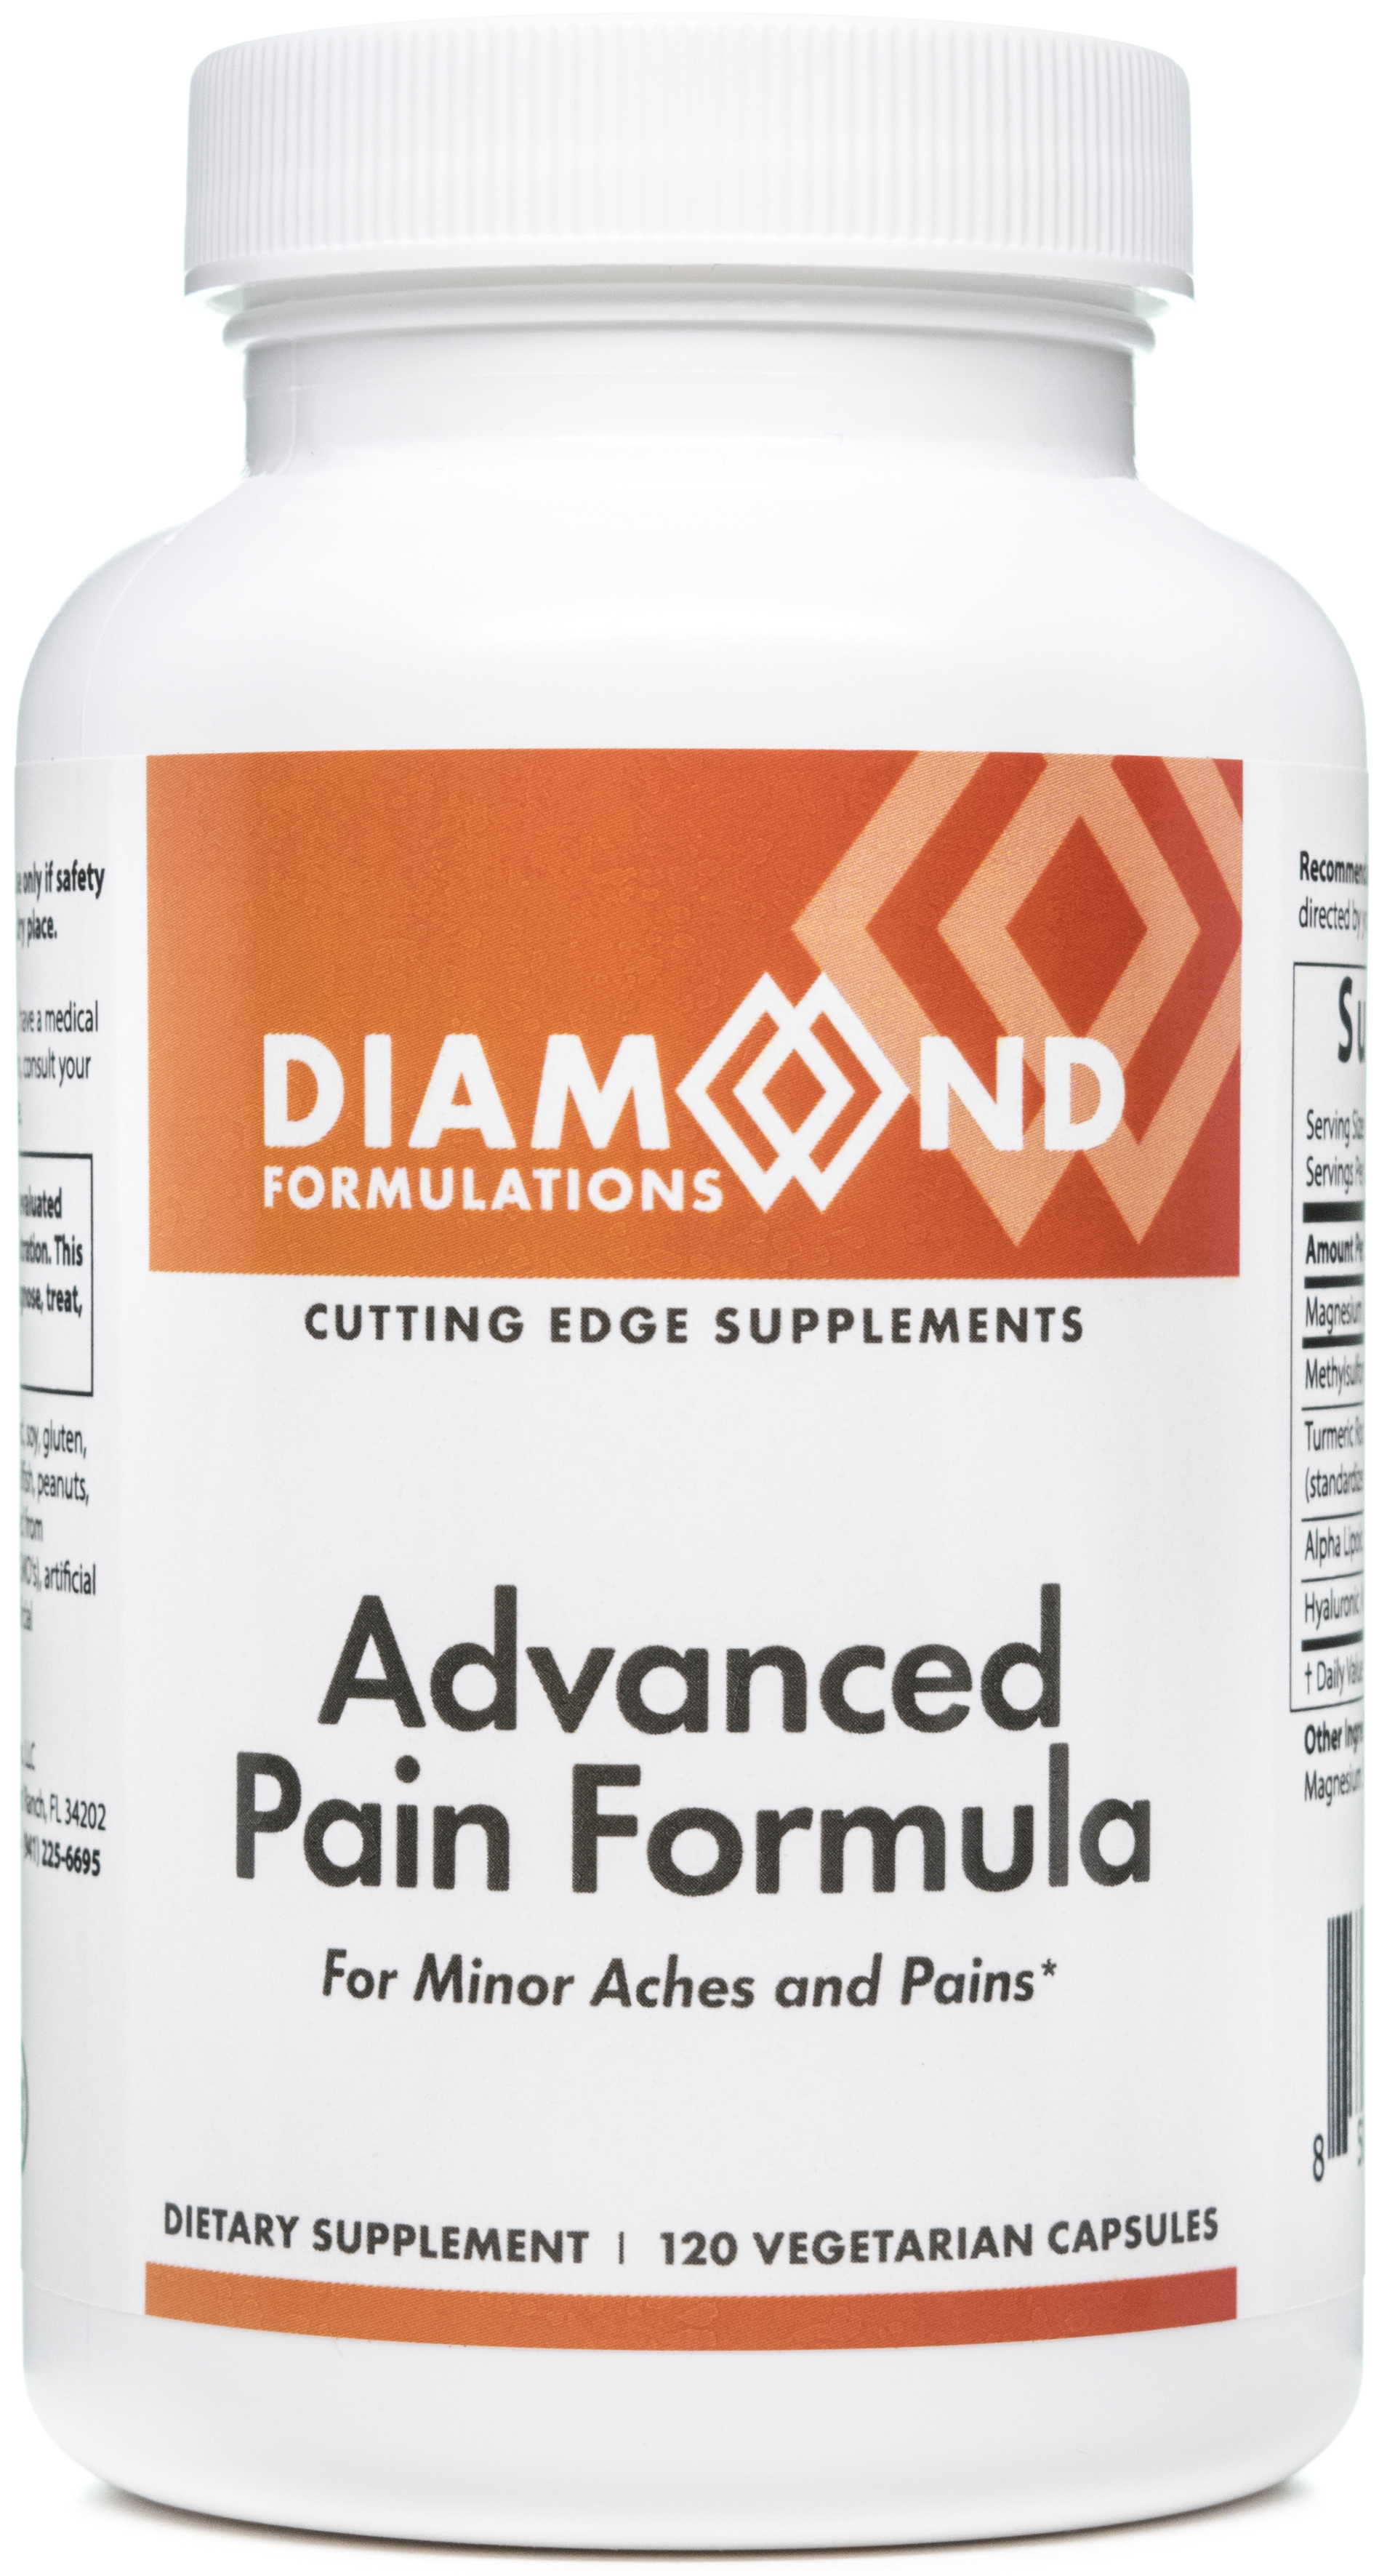 advanced-pain-formula-by-diamond-formulations-2.jpg